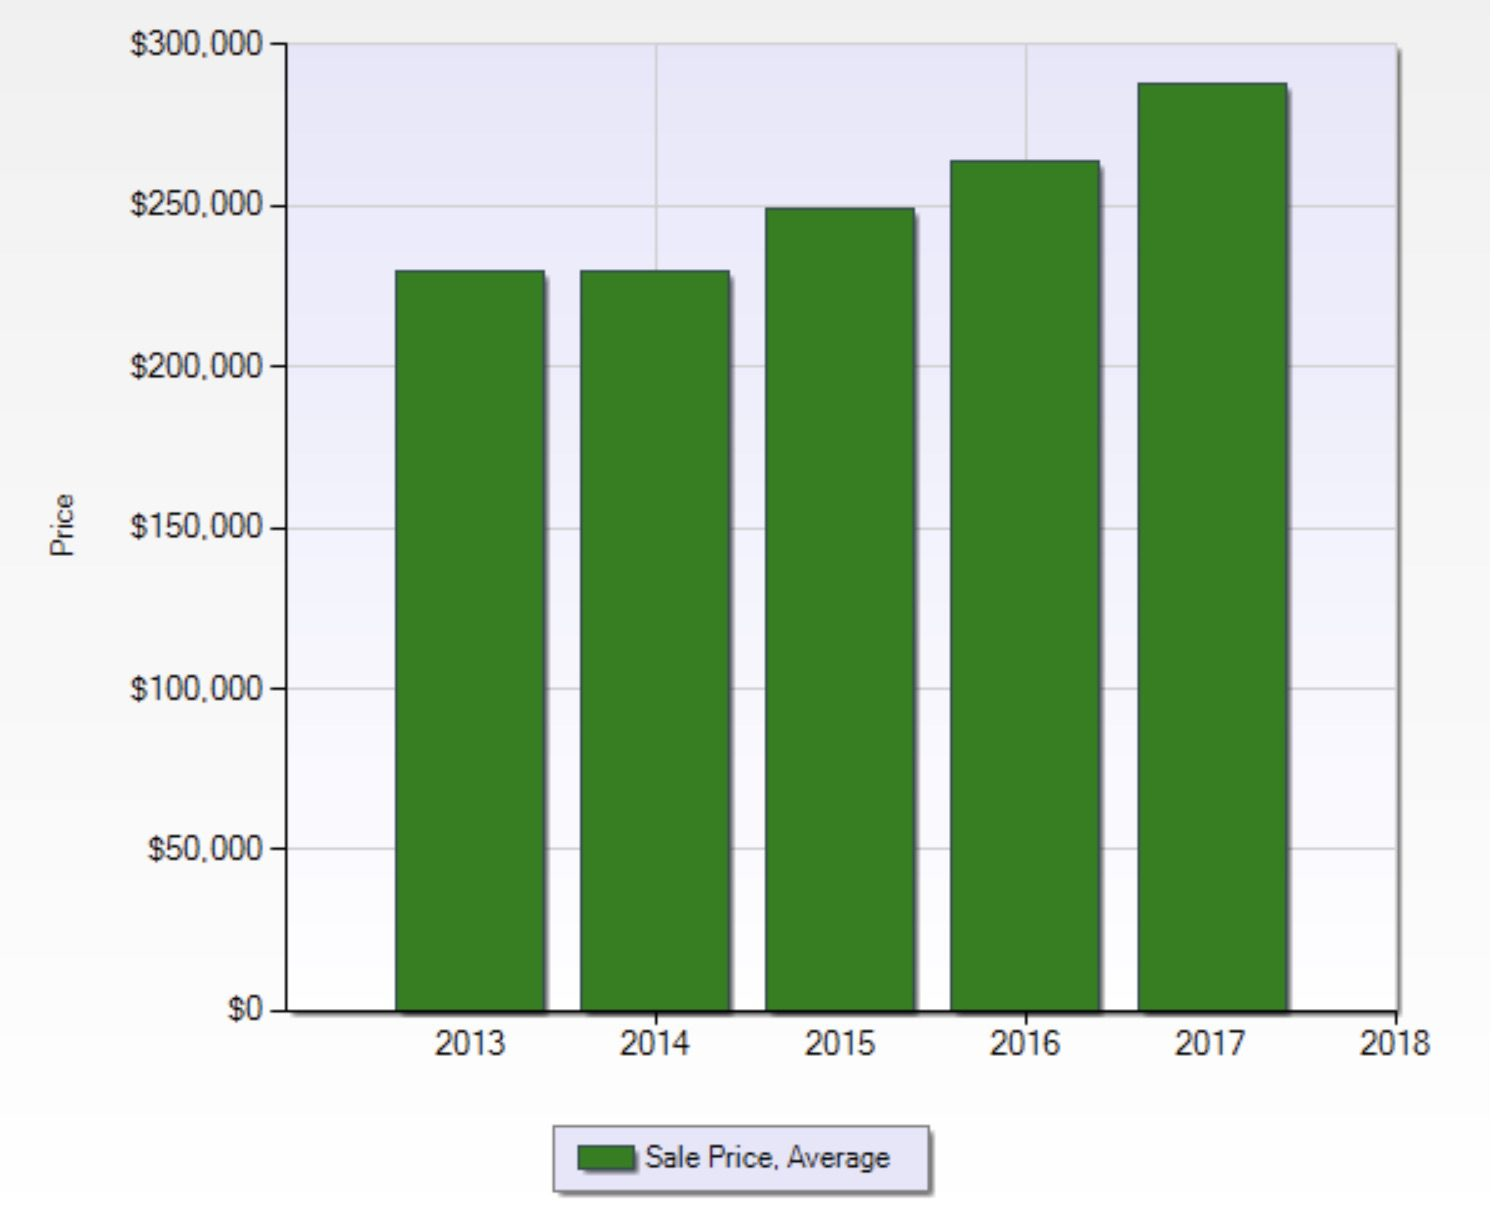 2017 Sun City Summerlin Home Prices 2012 to 2017 showing increase since 2013